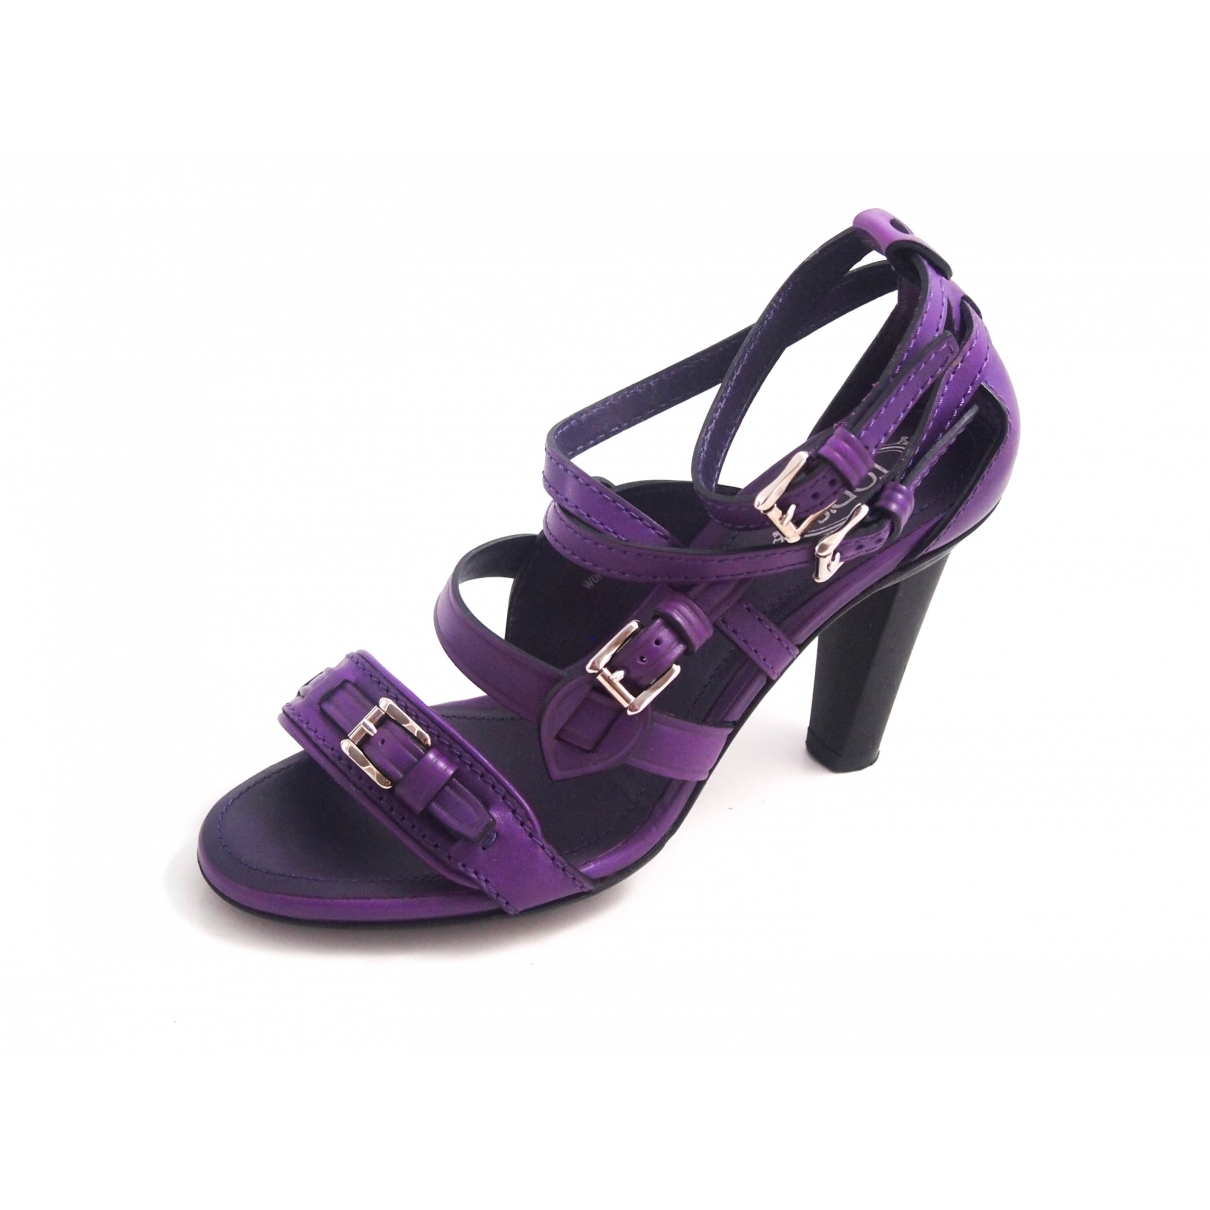 Tod's \N Purple Leather Sandals for Women 36.5 EU